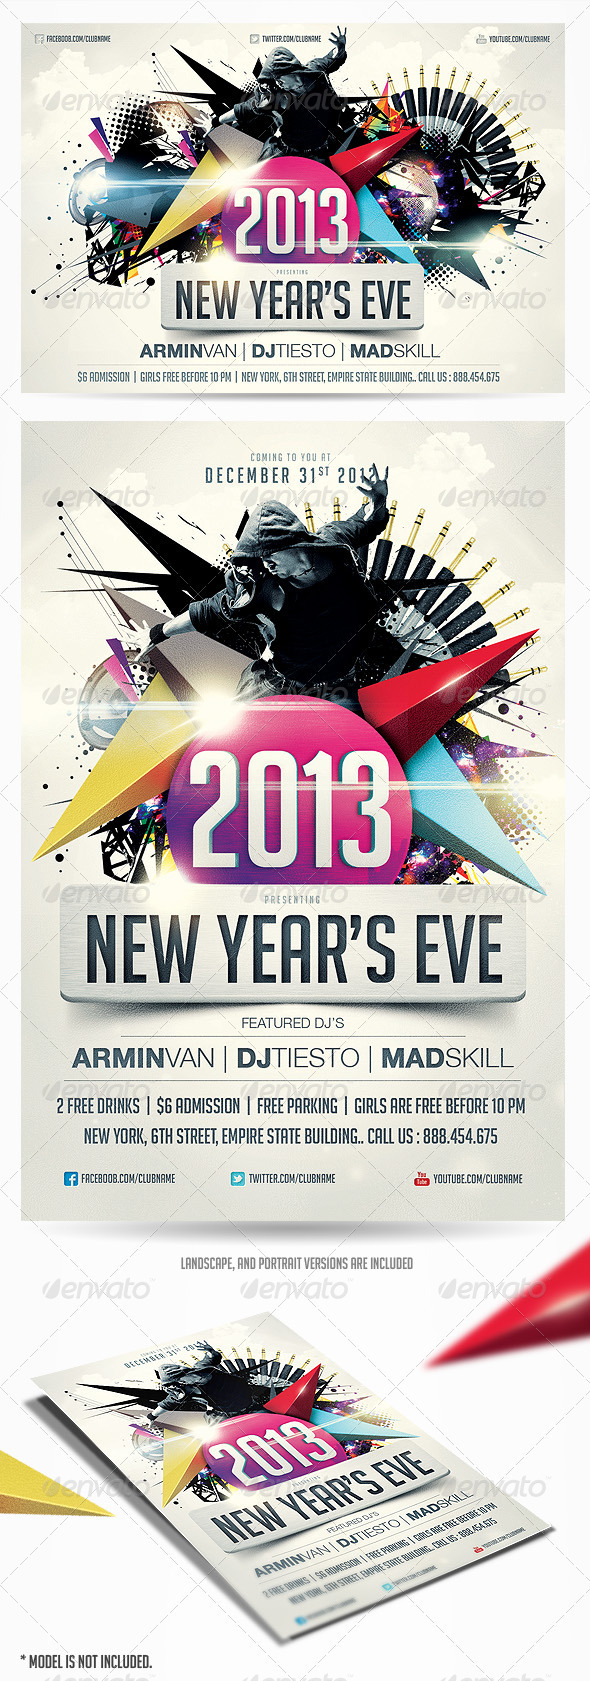 GraphicRiver 2013 New Years Eve Party Flyer Vol.2 3598773